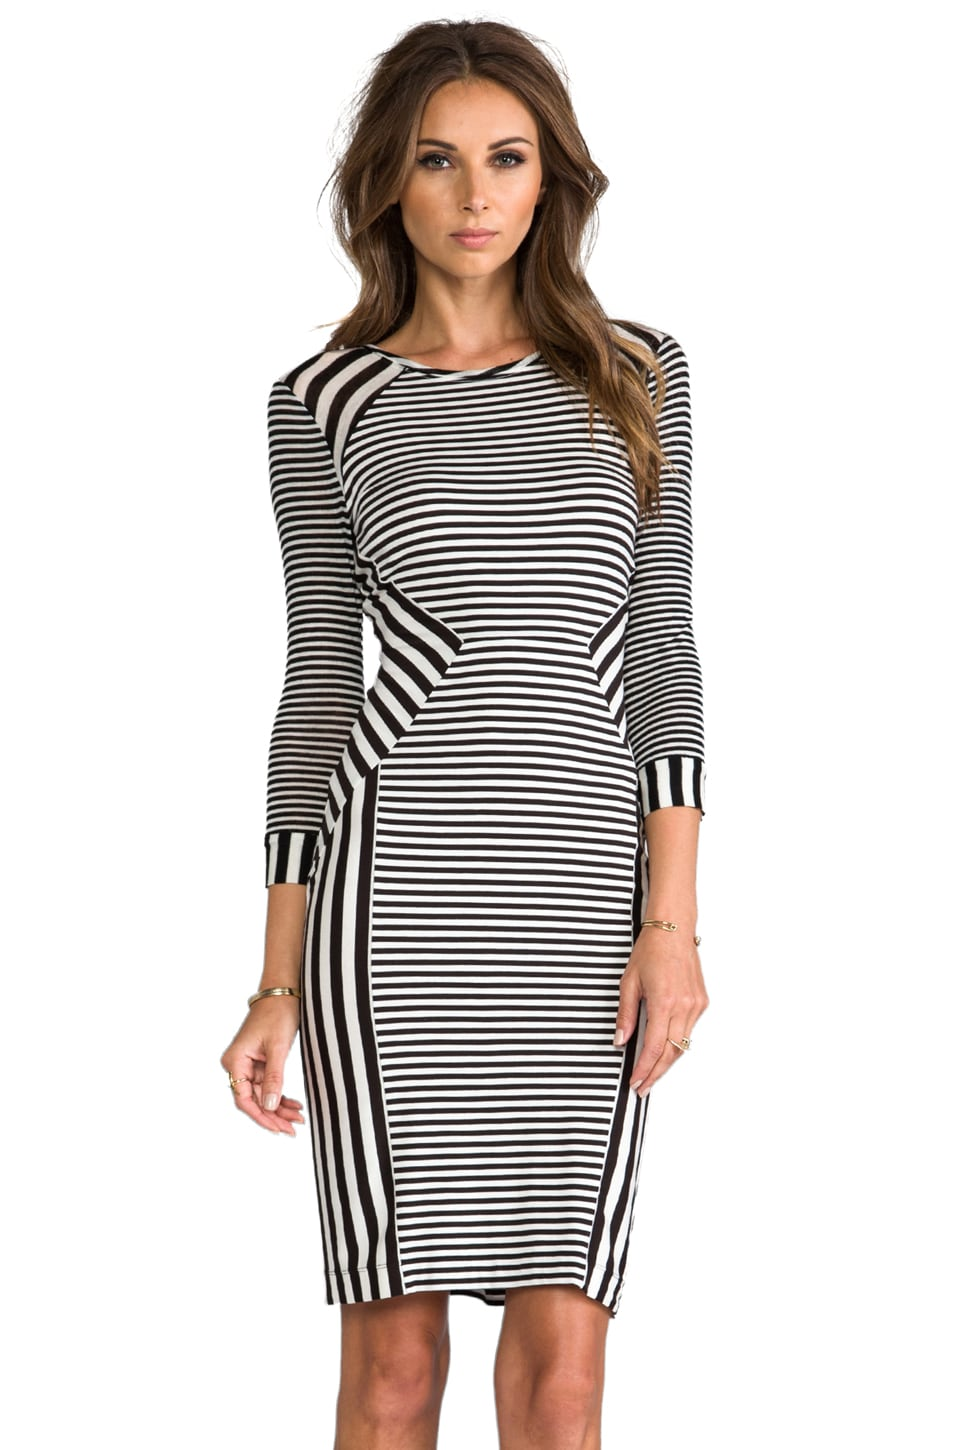 Diane von Furstenberg RUNWAY Haven Dress in Black/White